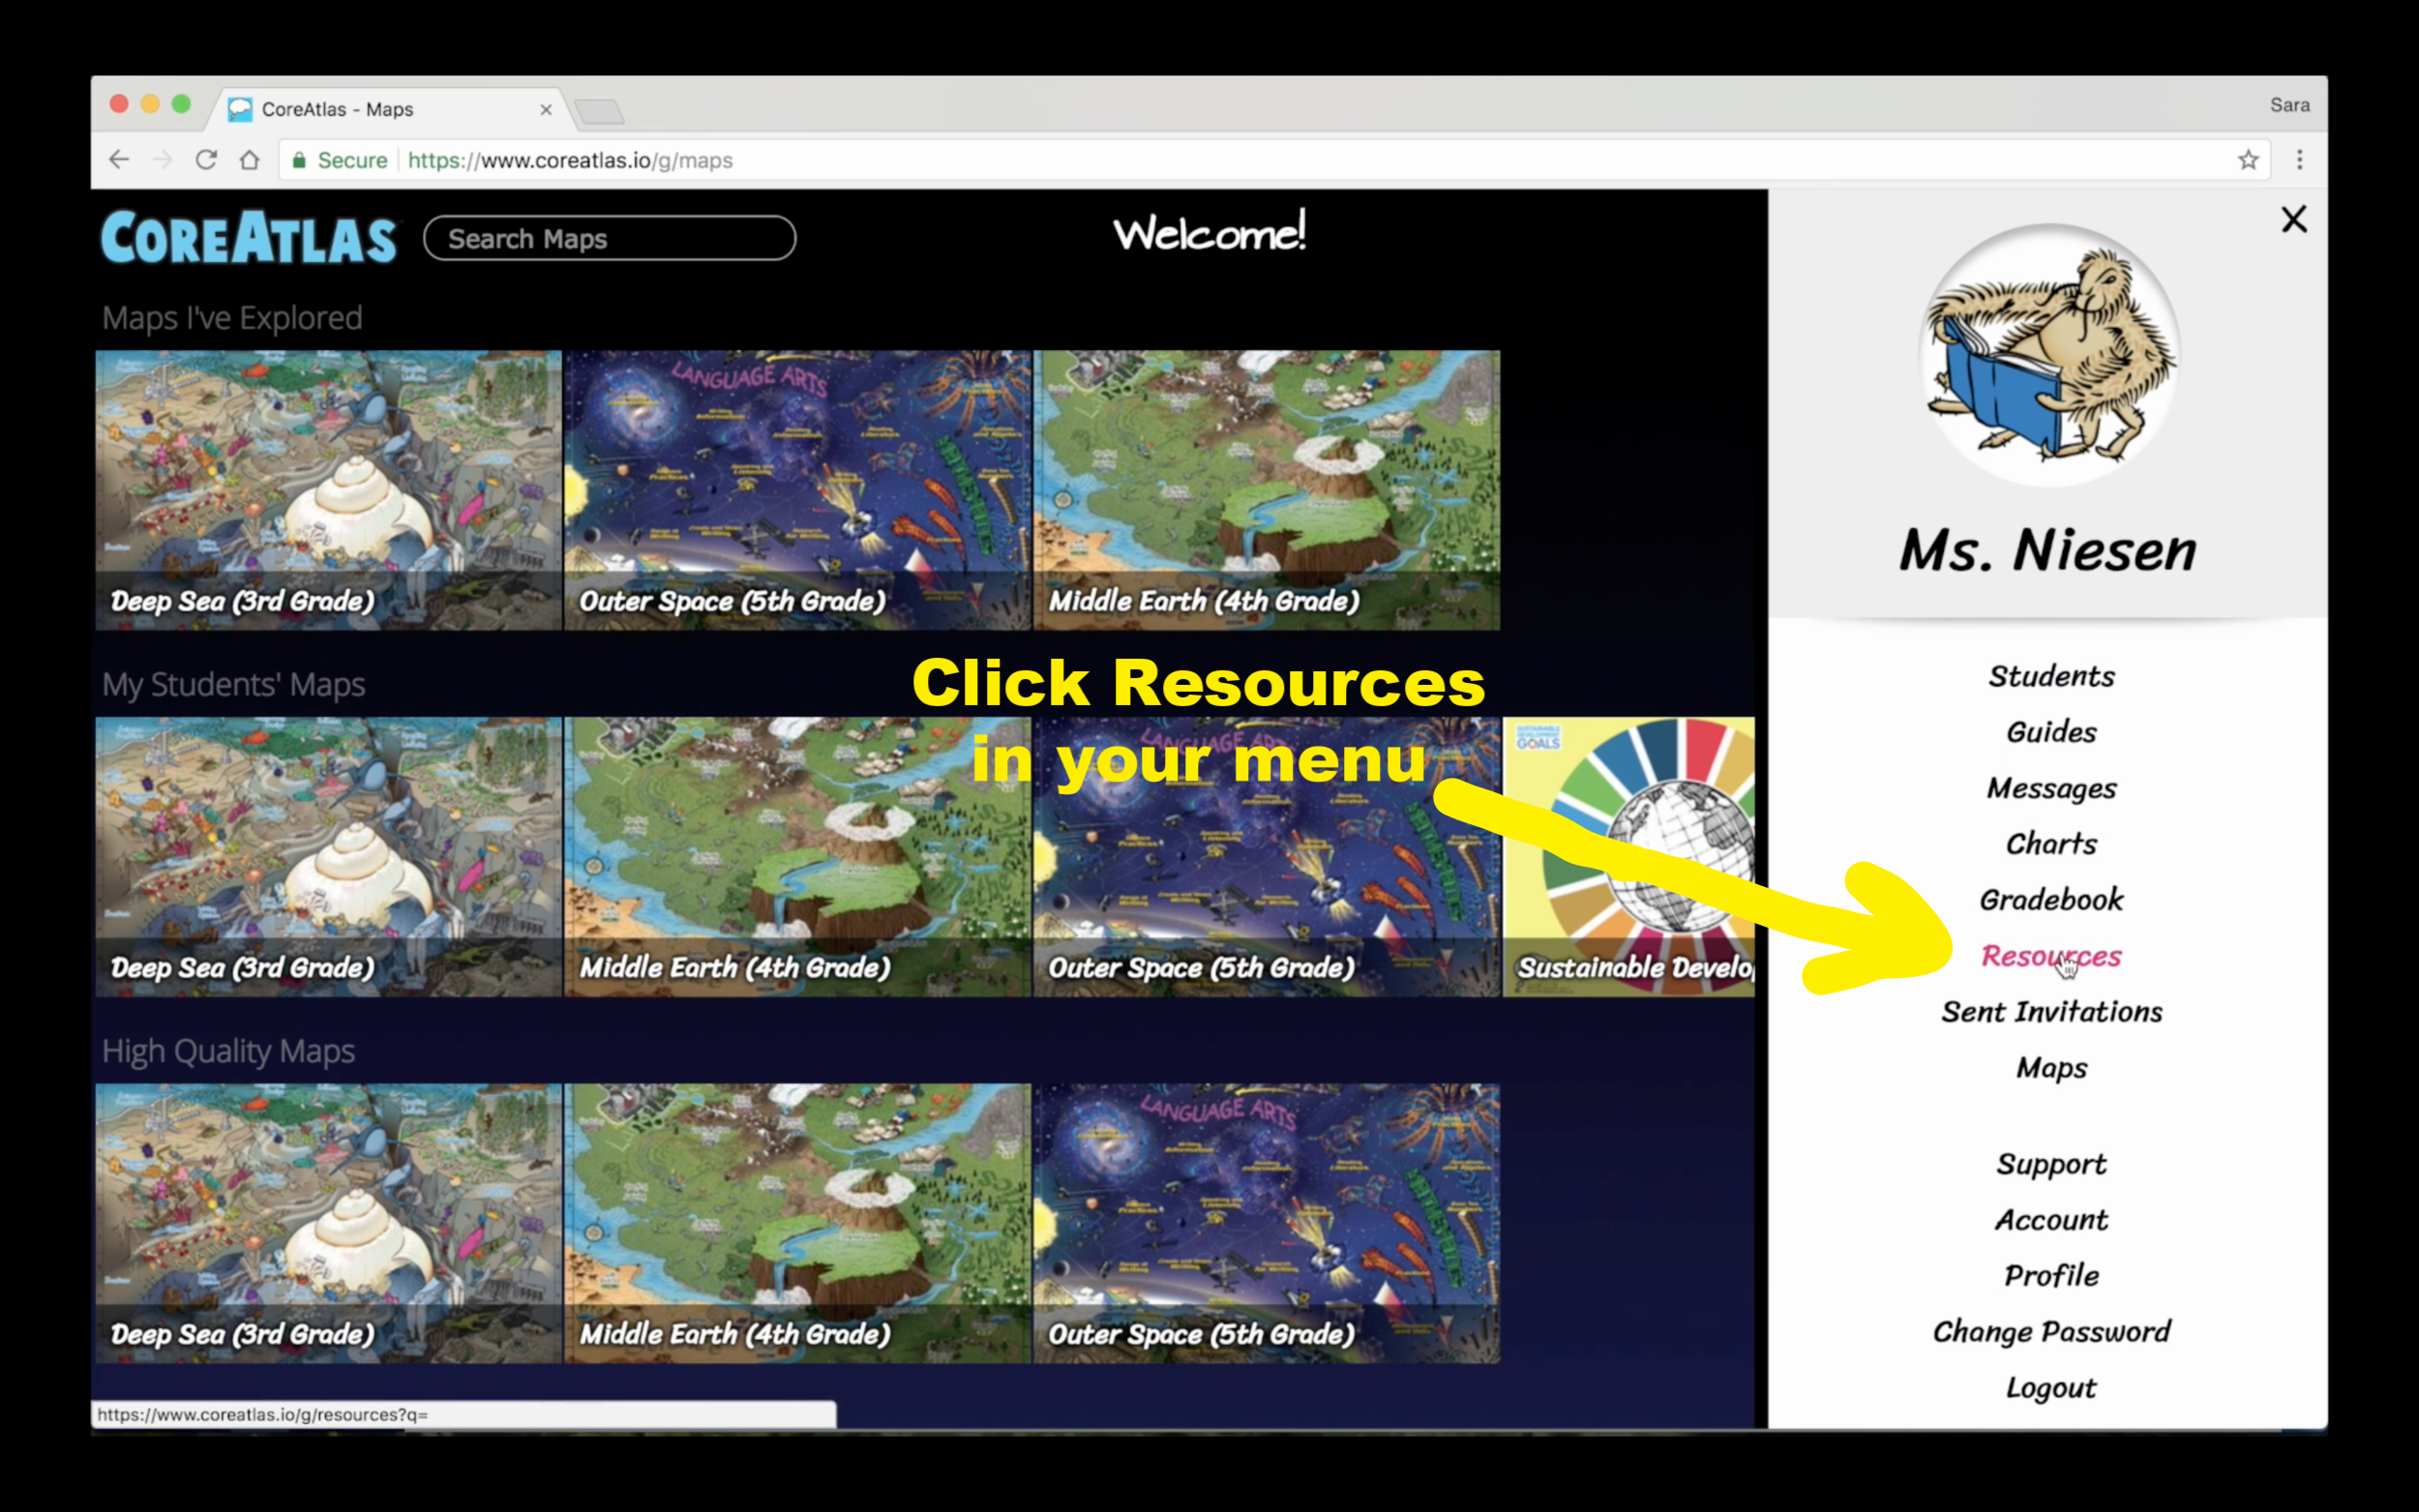 1. Open your Main Menu by clicking your avatar (top right of screen). Click Resources.